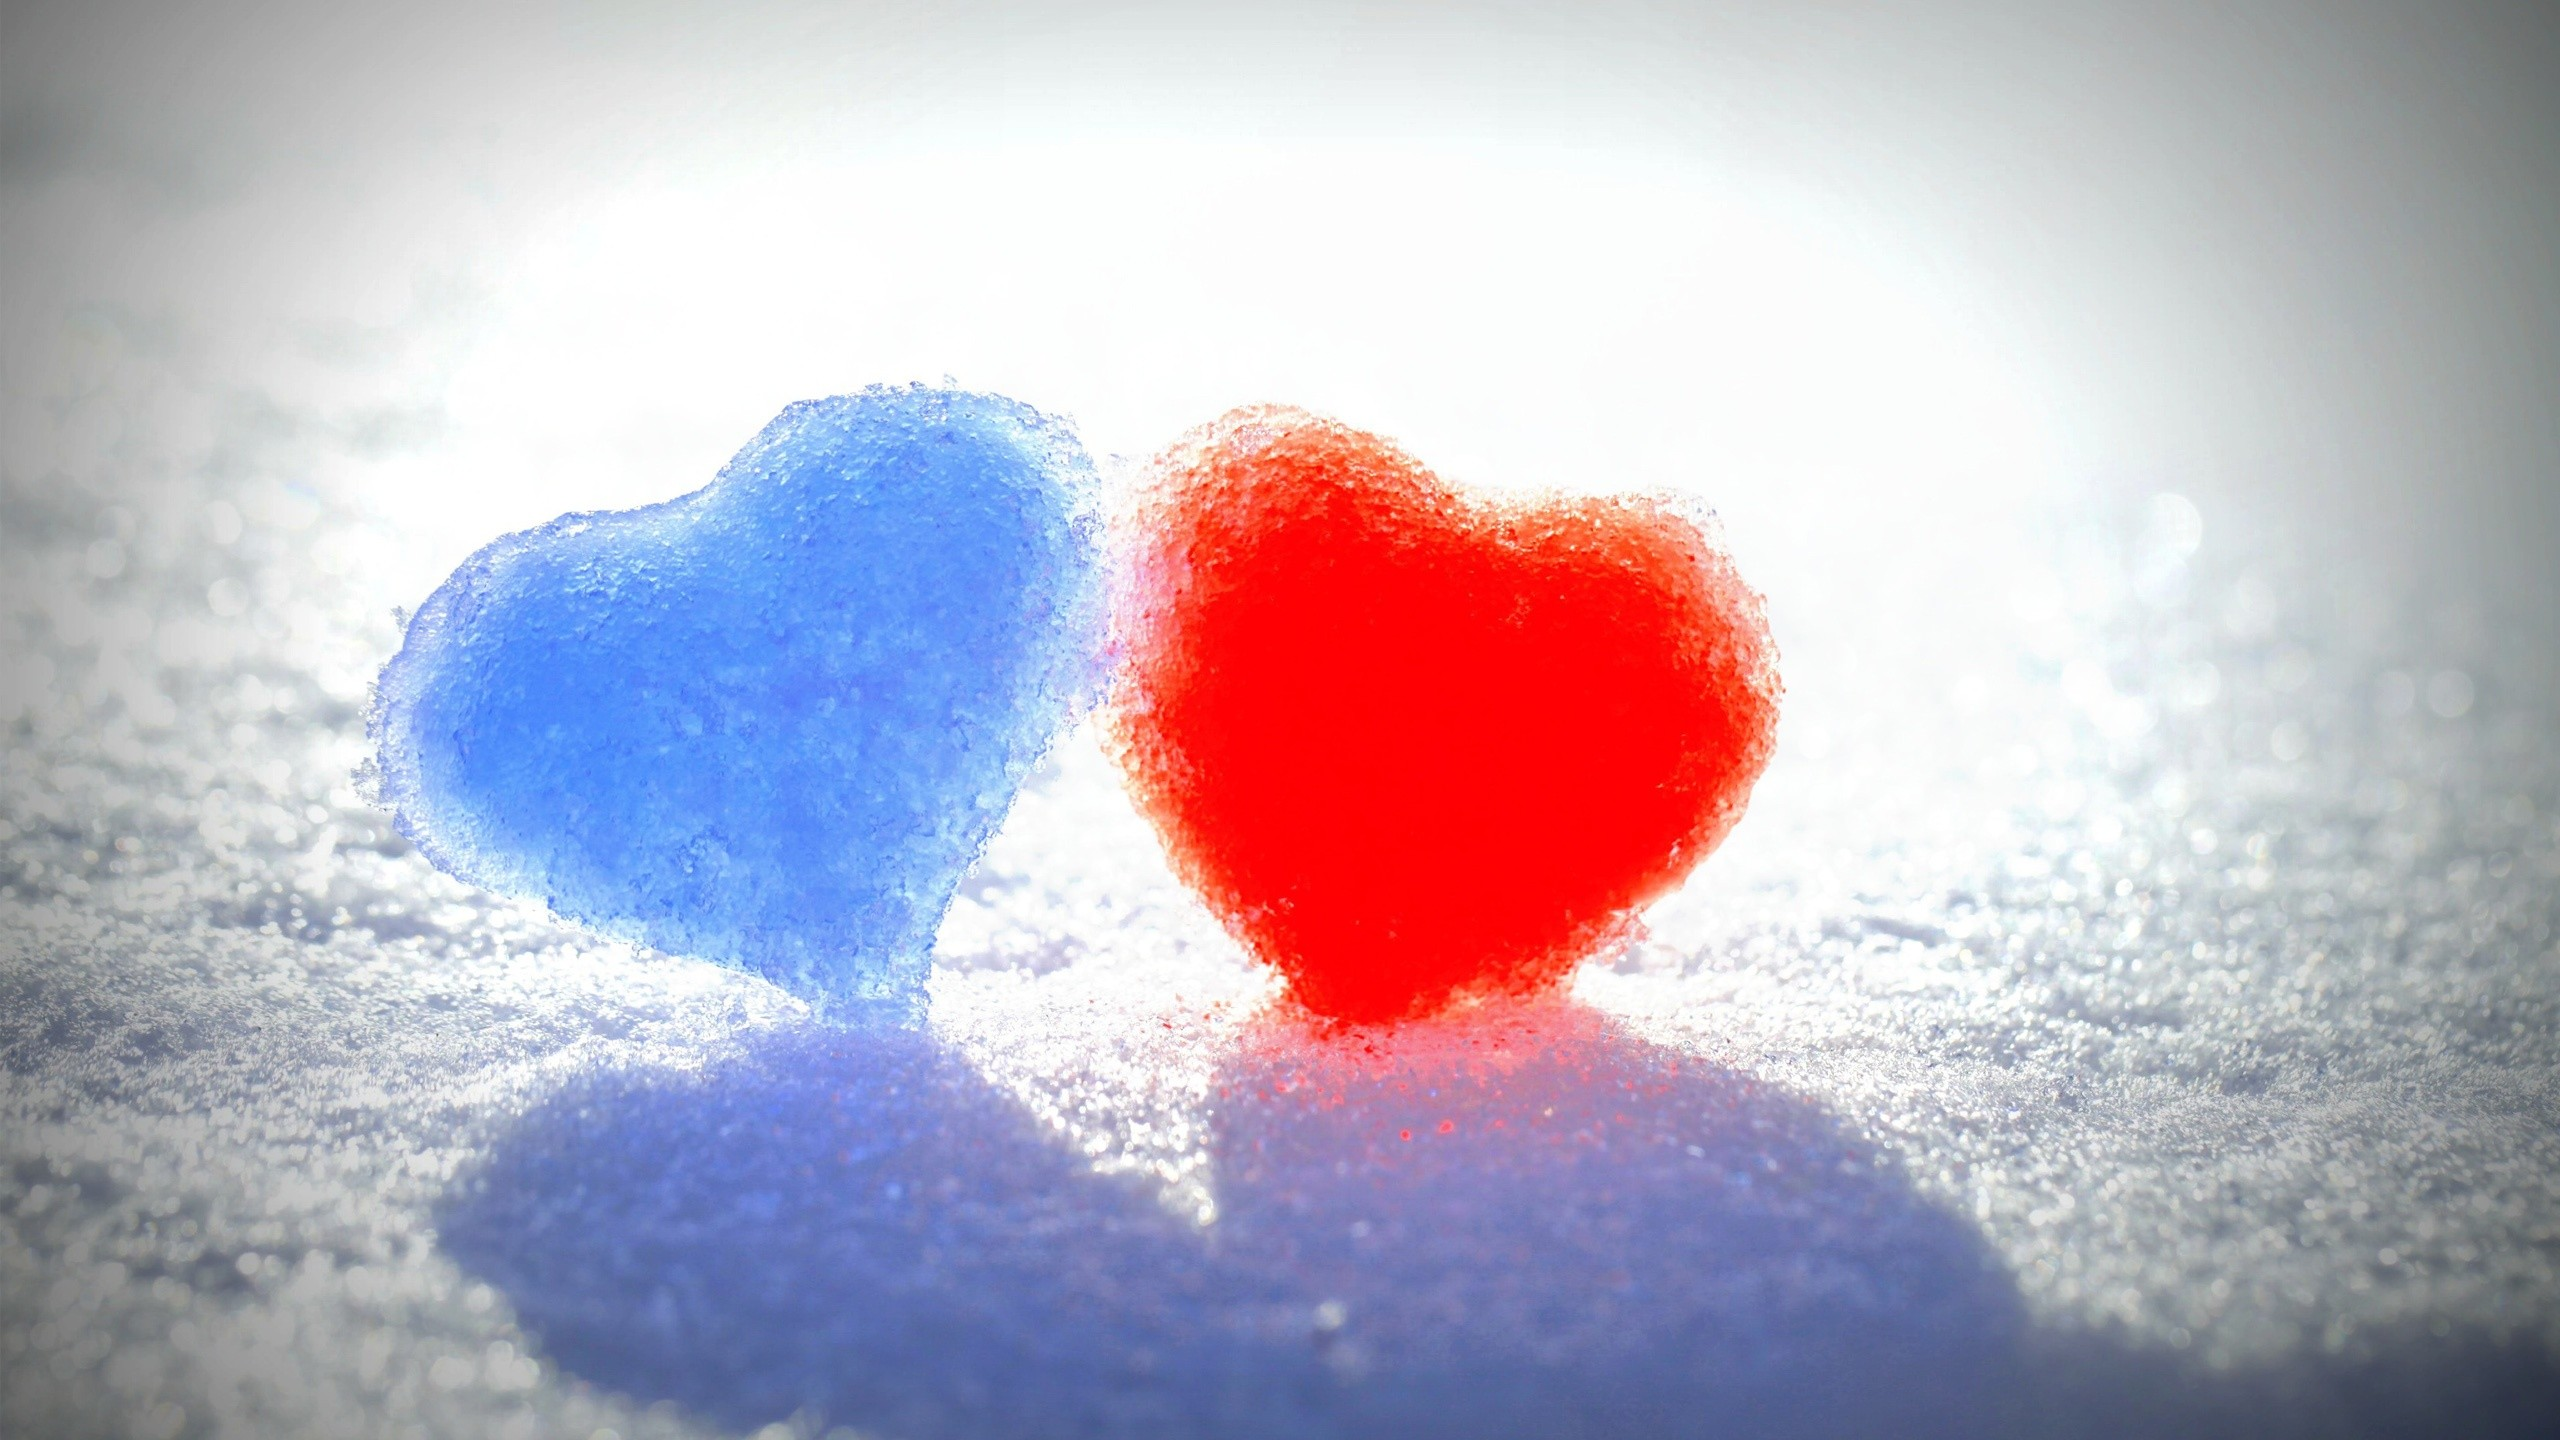 2560x1440 Blue Red Snow Hearts Wallpapers